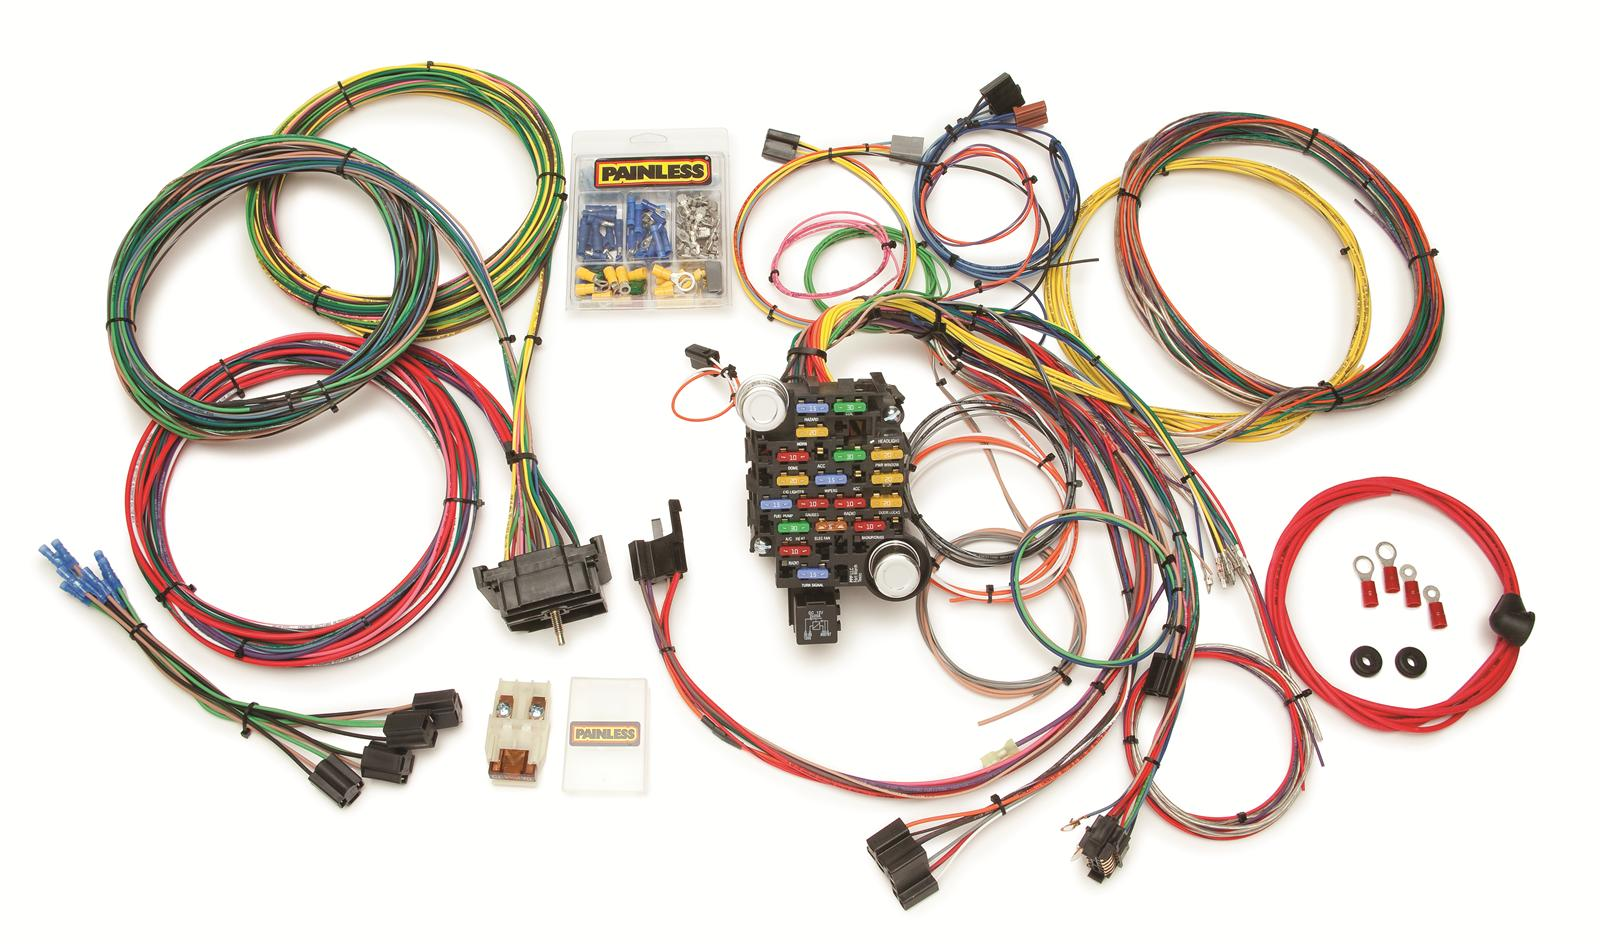 1983 ford truck wiring harness kits trusted wiring diagram u2022 rh soulmatestyle co